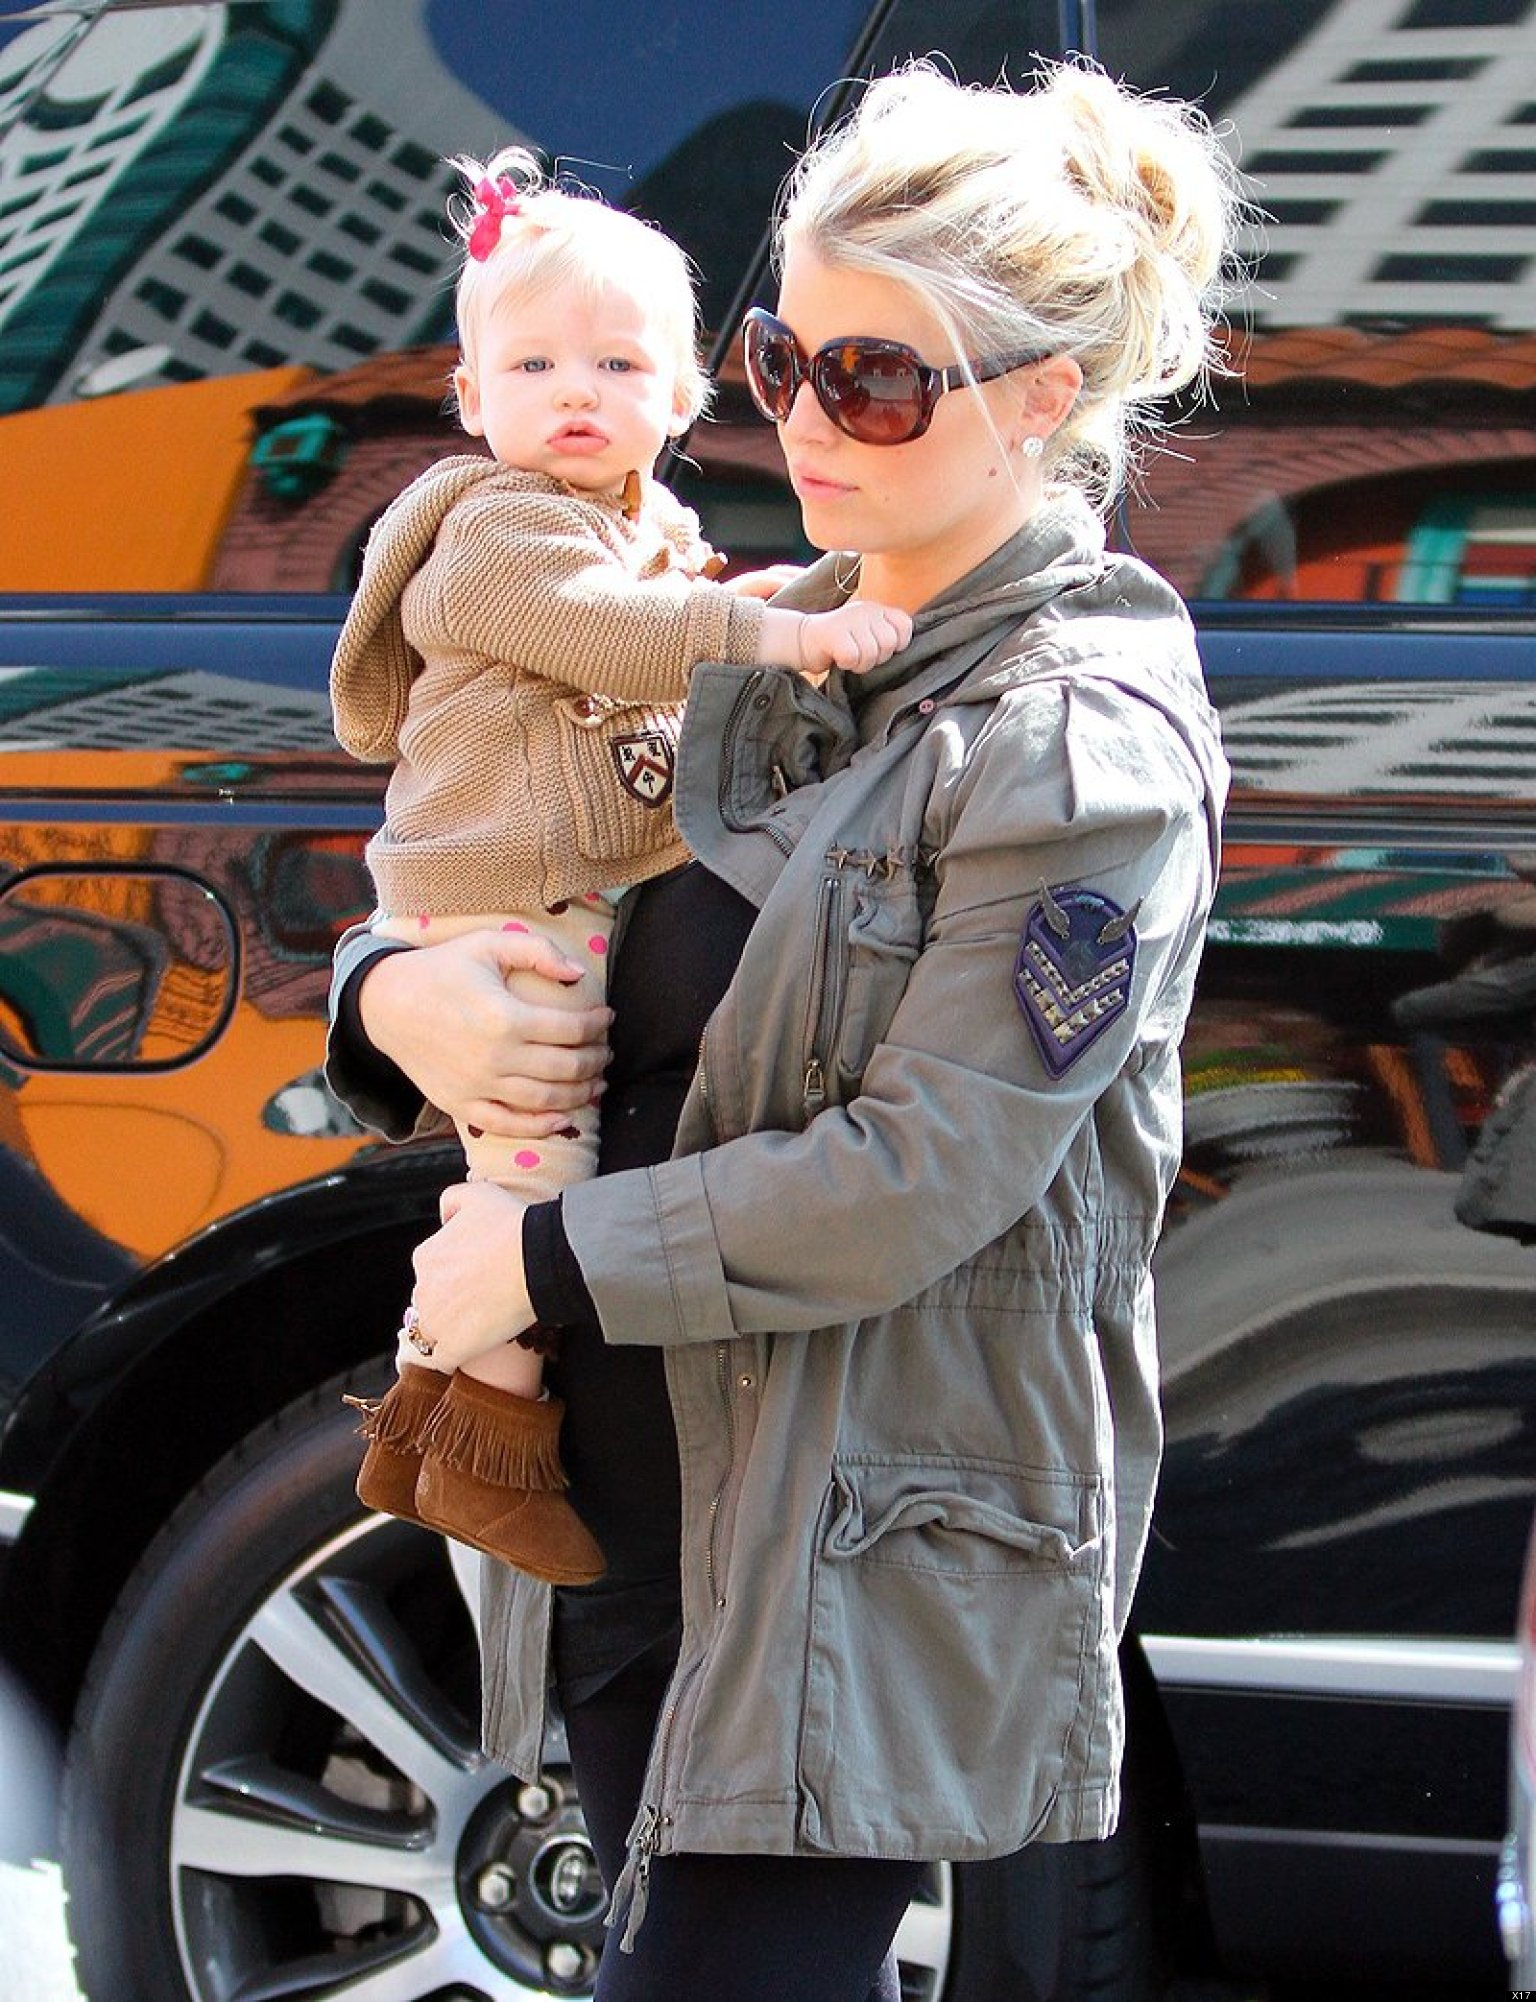 ed2c0e65aae0b Pregnant Jessica Simpson Steps Out With Daughter Maxwell | HuffPost